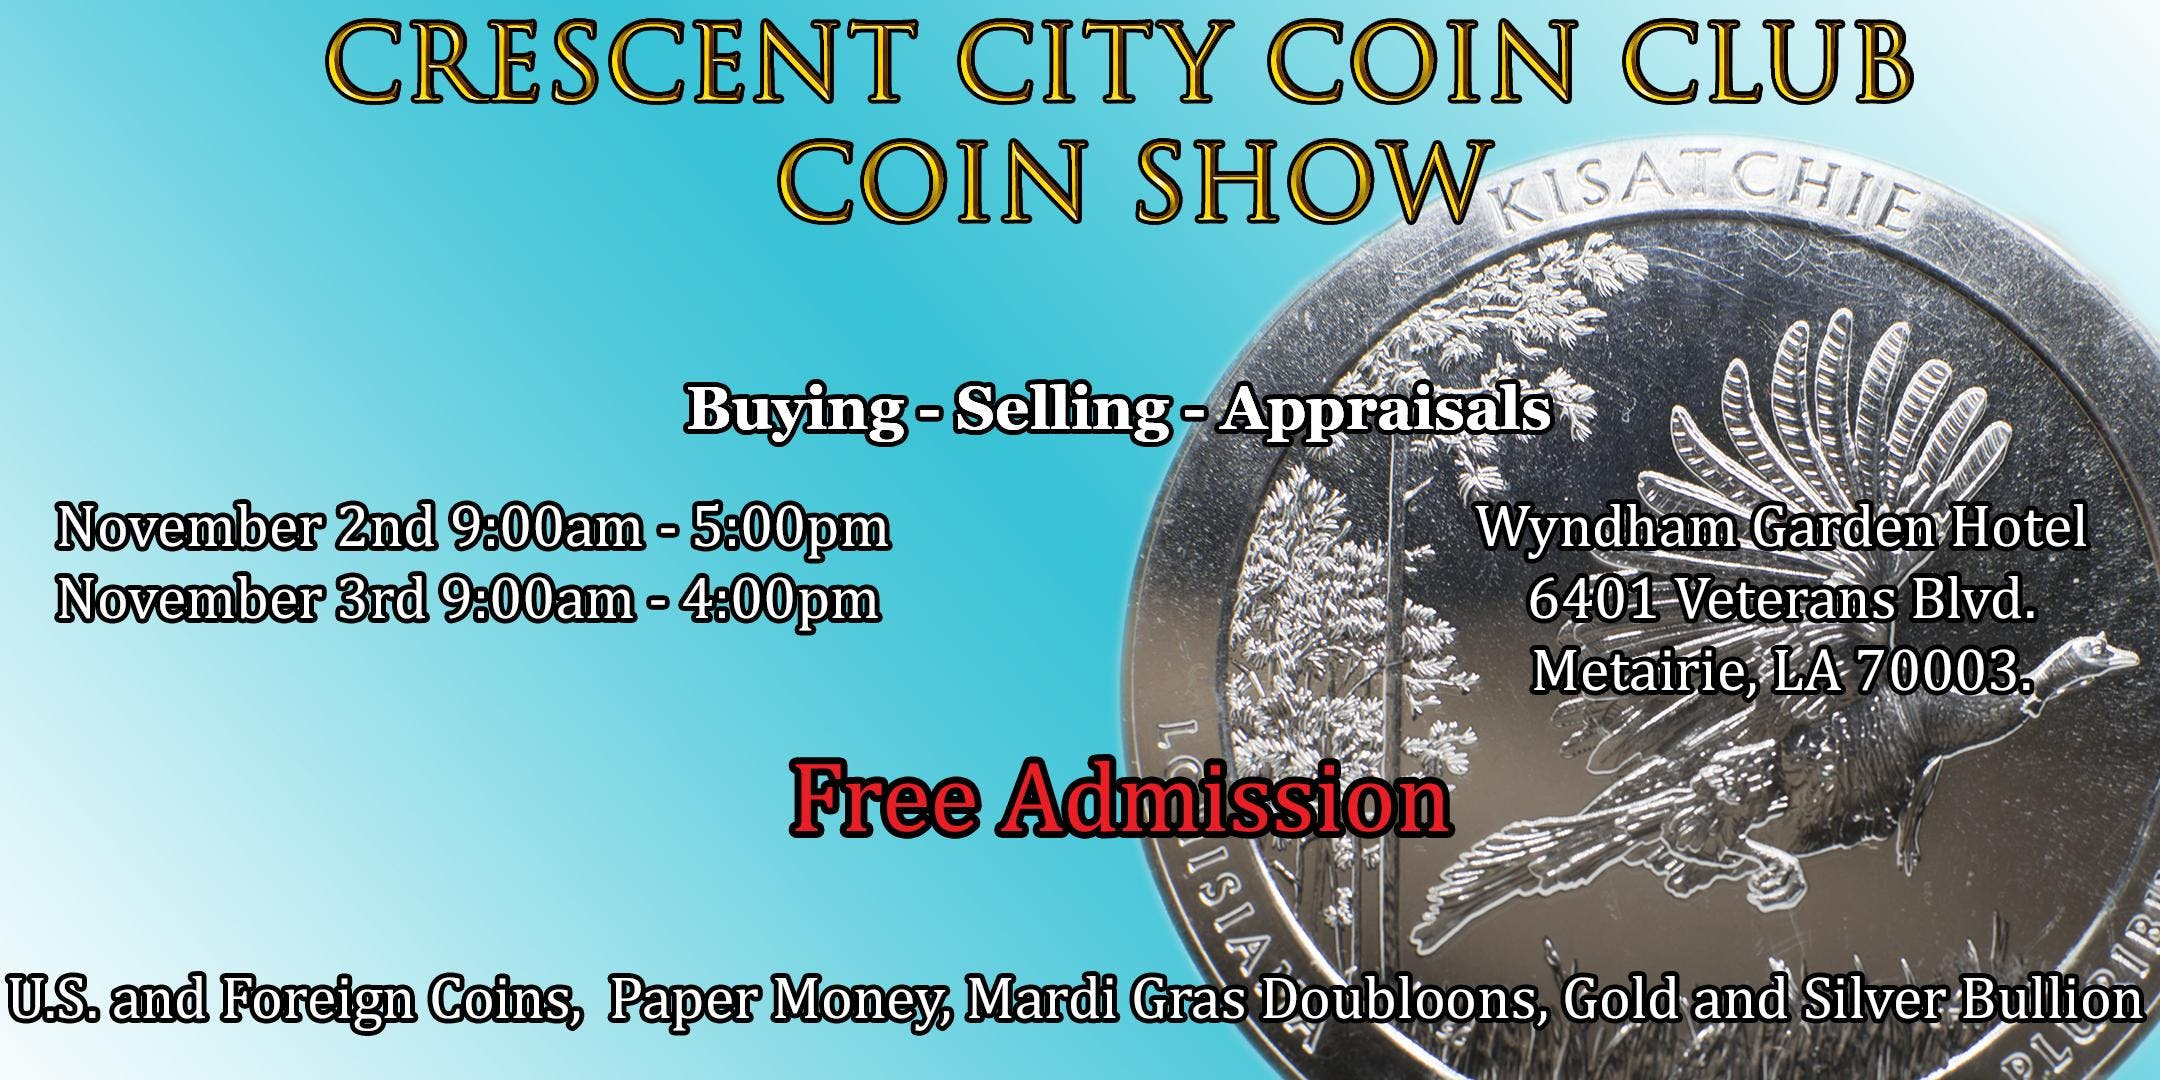 upcoming coin shows in my area